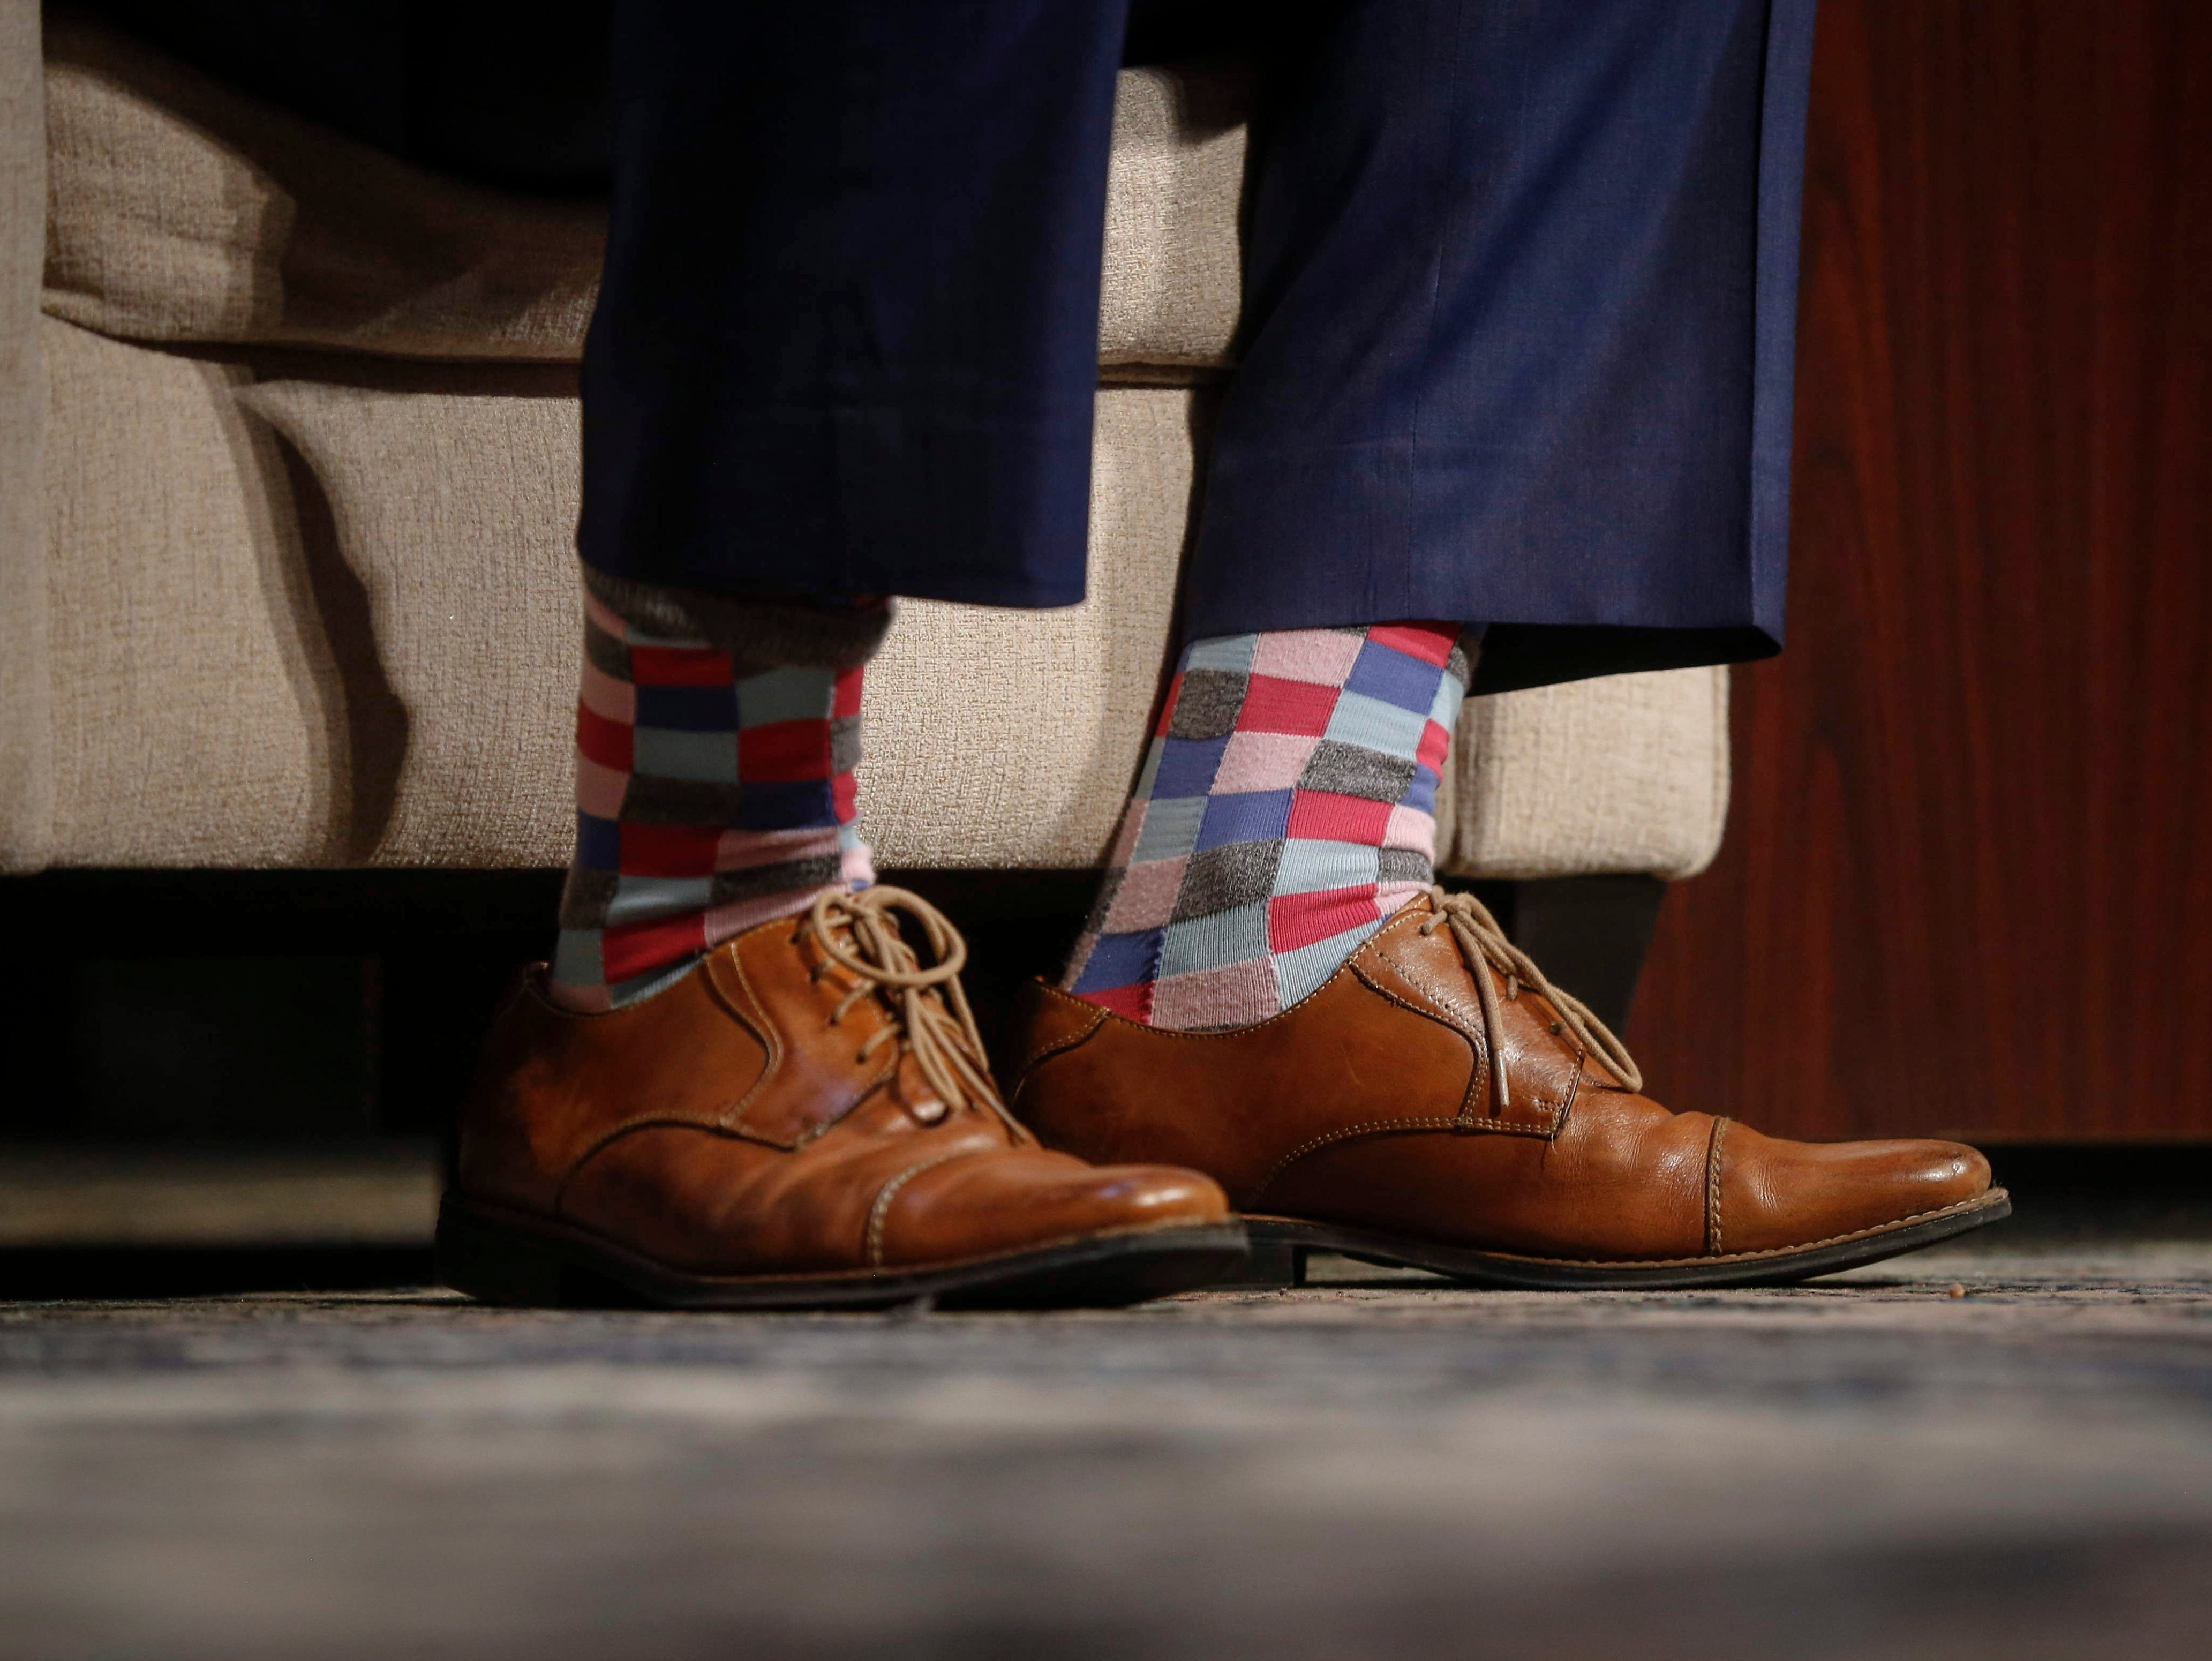 Colorful socks worn by U.S. Representative Tim Ryan (D-Ohio) during the Storm Lake Times political forum in Storm Lake on March 30, 2019.